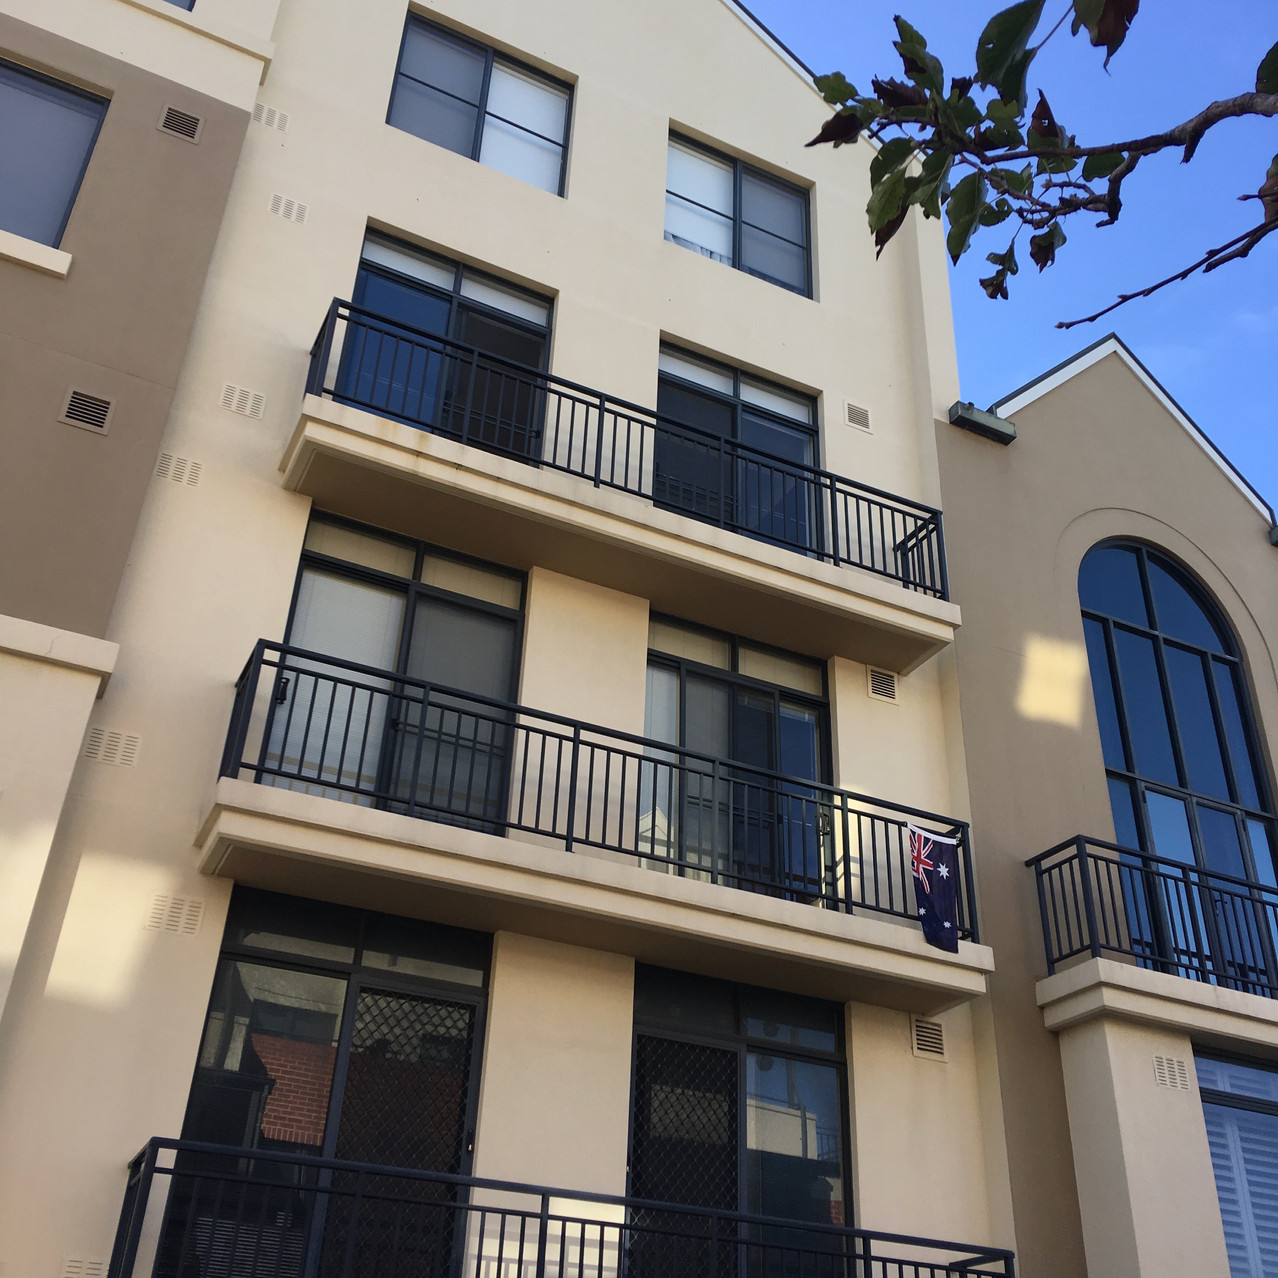 Conspar was engaged by the owners of these residential apartment buildings in Subiaco to carry out rising damp treatment and restoration works.